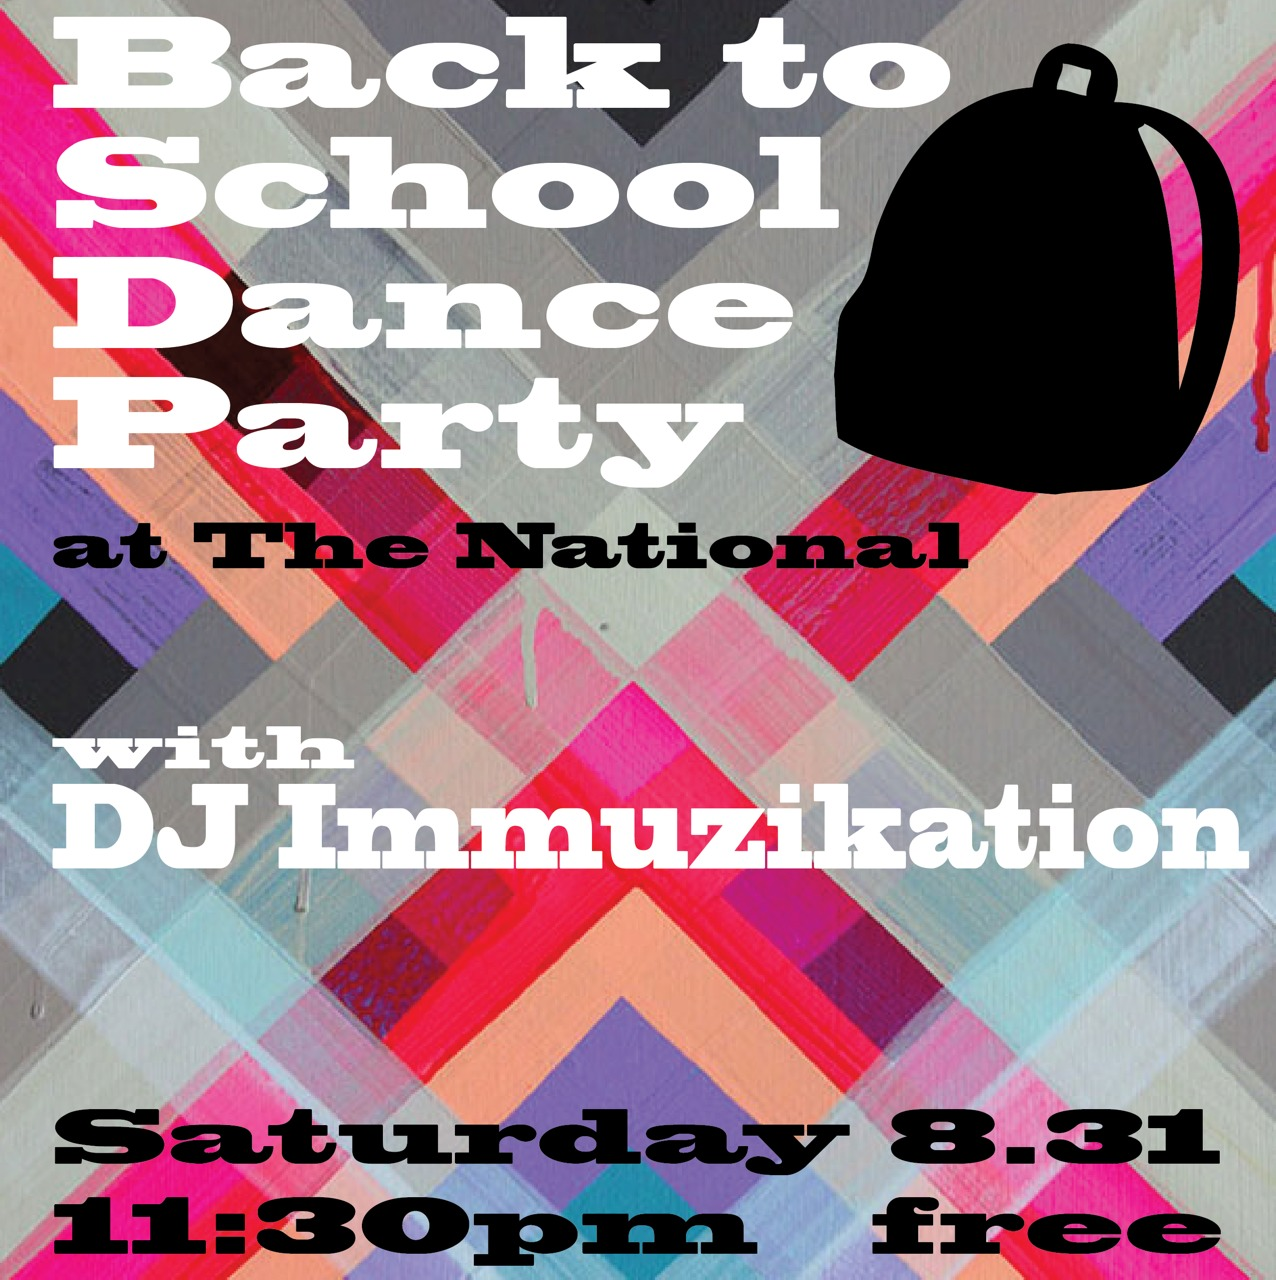 Welcome back, Athens! Get down with us this Saturday night with DJ Immuzikation, after hours in our dining room. Happy Labor Day Weekend!